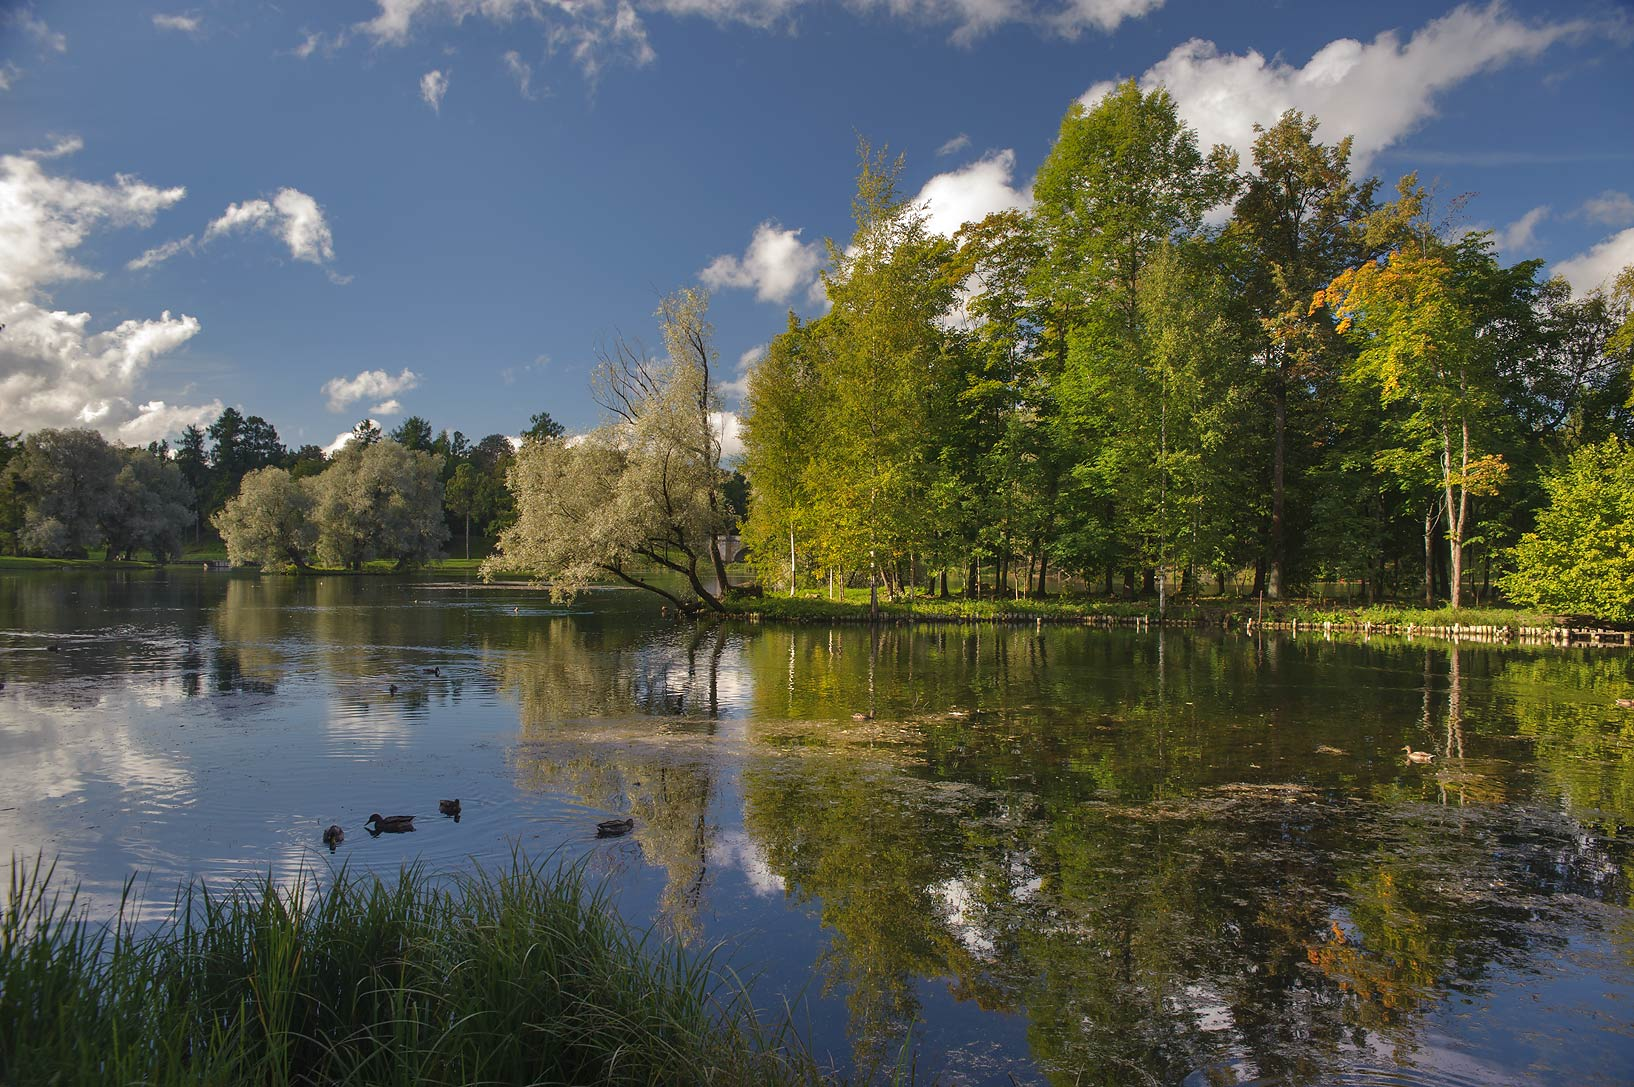 Crow Island in Beloe Lake in Gatchina Park. Gatchina, a suburb of St.Petersburg, Russia